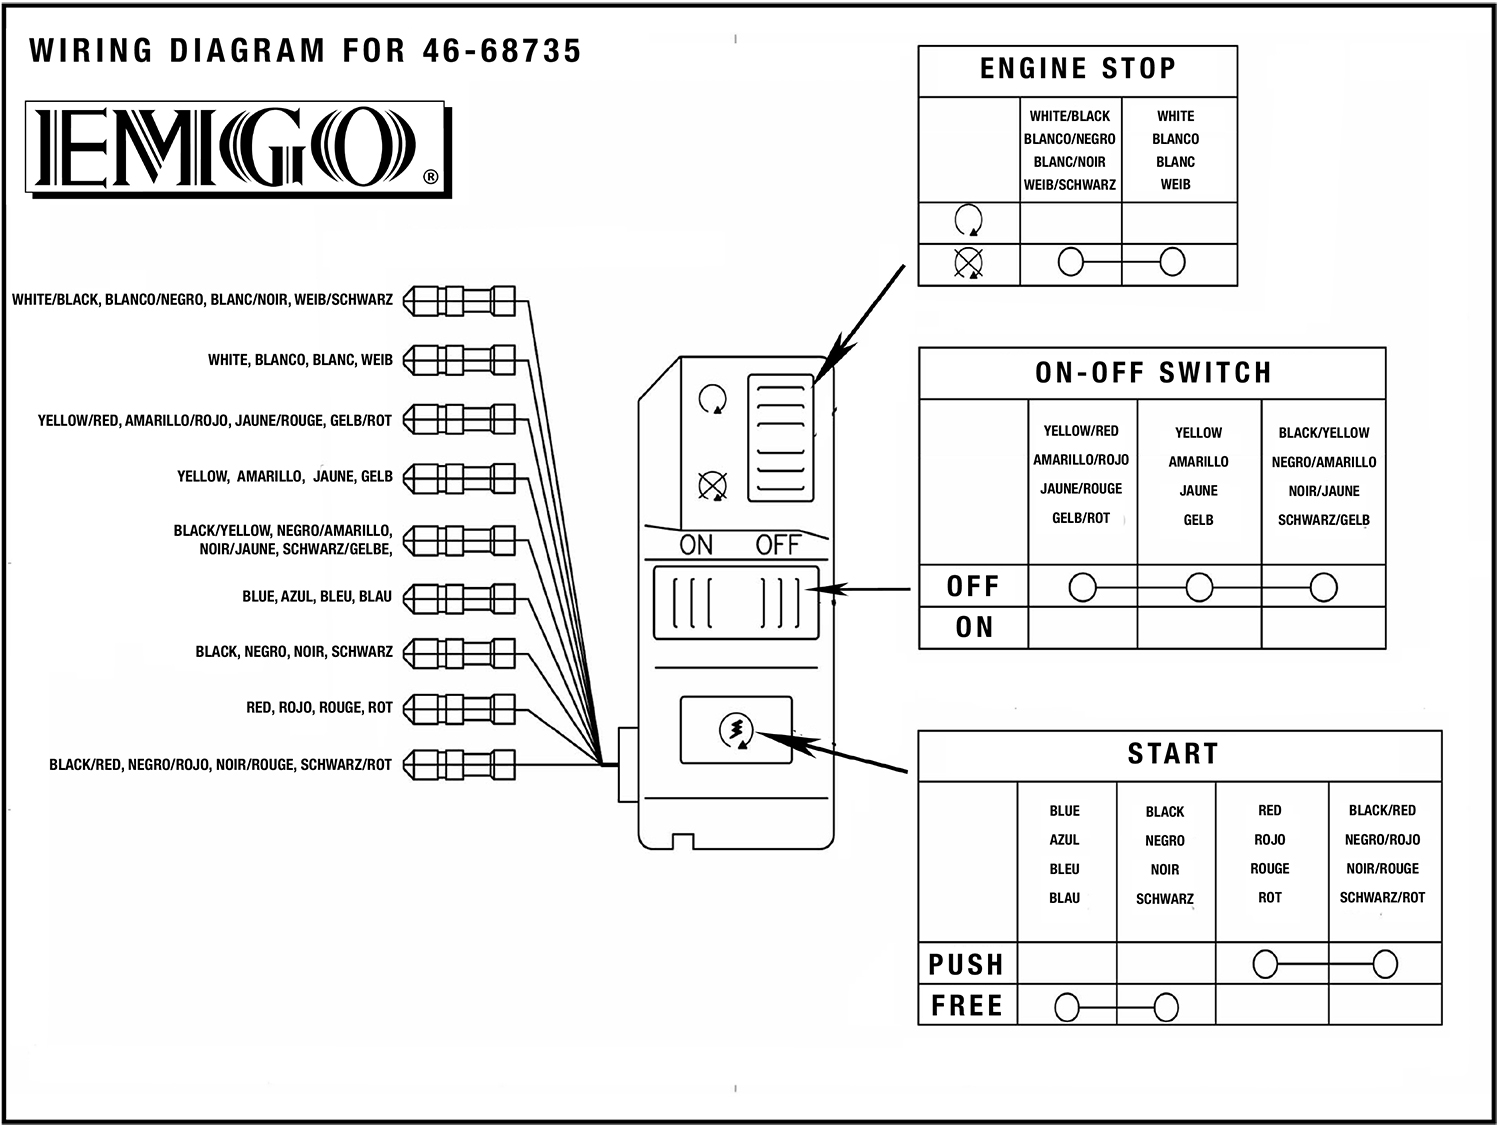 46 68735 wiring diagram emgo universal multi switch handlebar motorcycle dual sport cafe pin out right?t=1490388975 emgo universal handlebar multi switch right 46 68735 wiring wiring diagram for multiswitch at bayanpartner.co